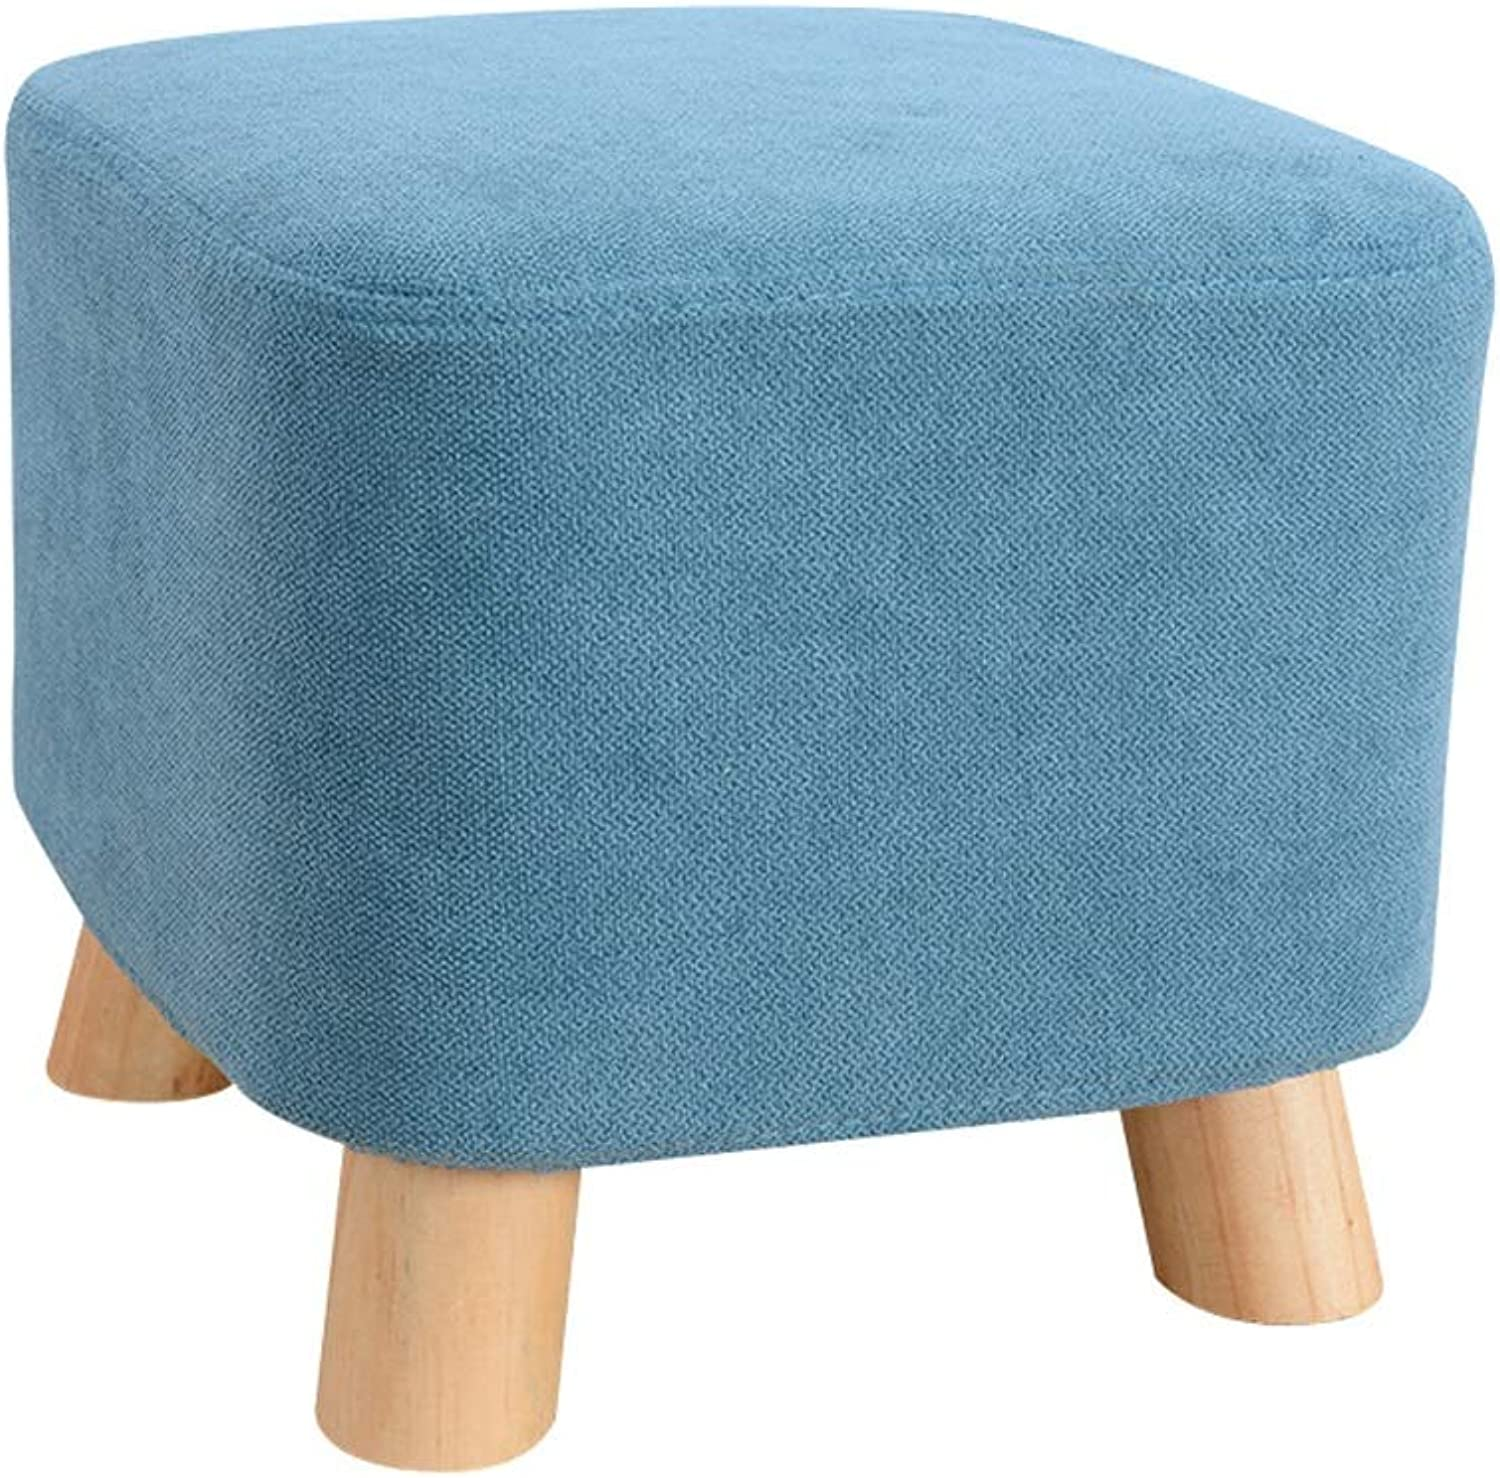 LSLMCS Sofa Stool,Square Buffer Footstool Chair StoolFabric Cover 4 Legs Stool and Detachable Linen Cover {bluee}